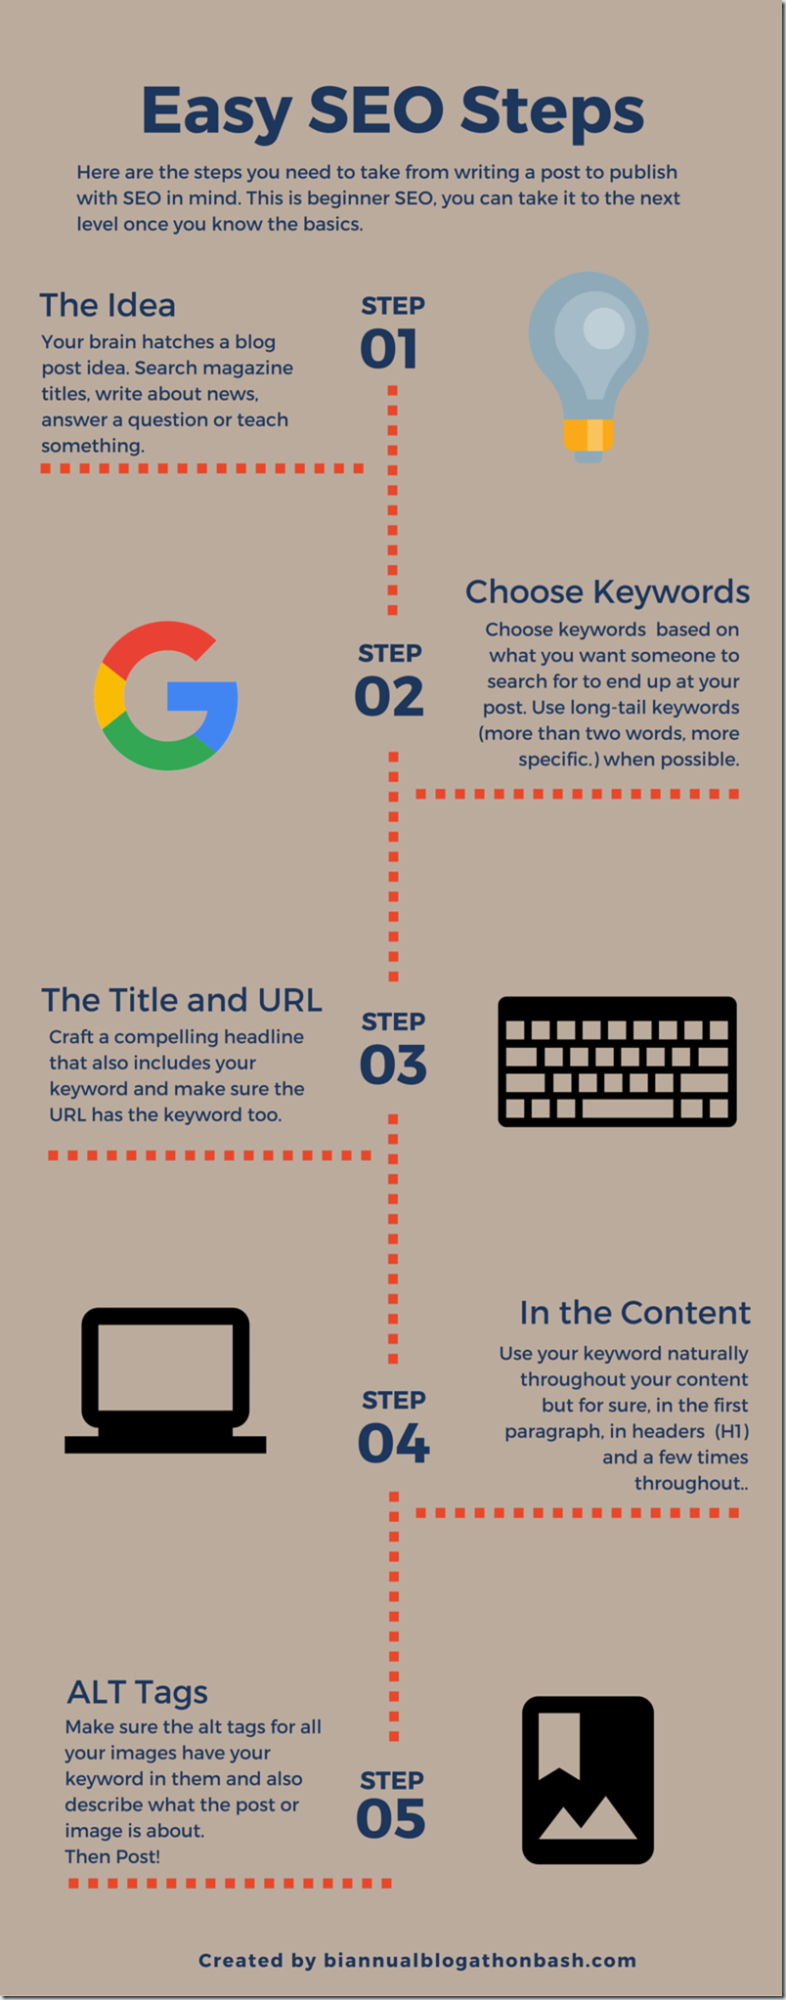 Easy SEO Steps Infographic